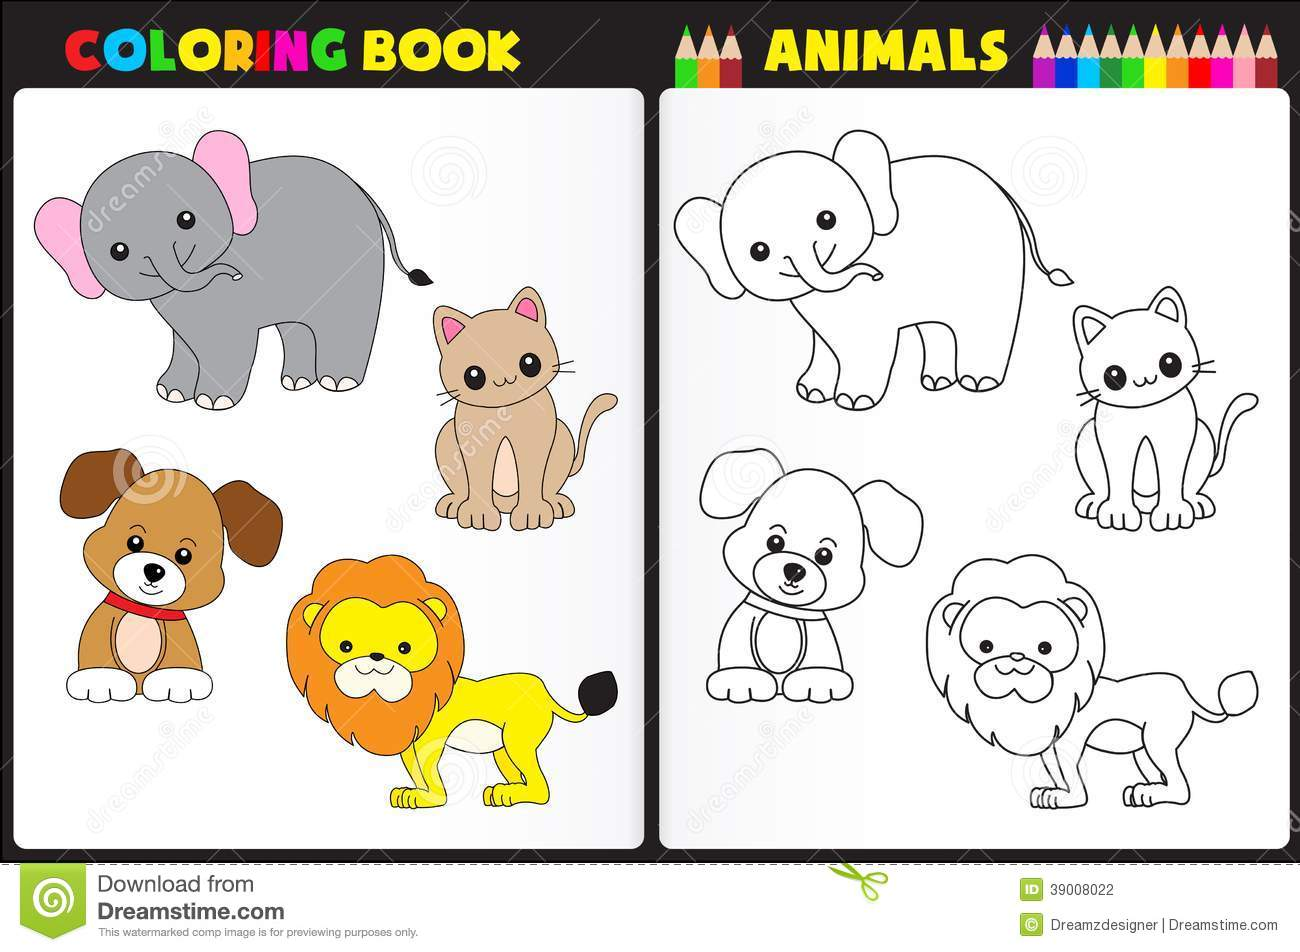 royalty free stock photo download coloring book animals - Coloring Book Animals